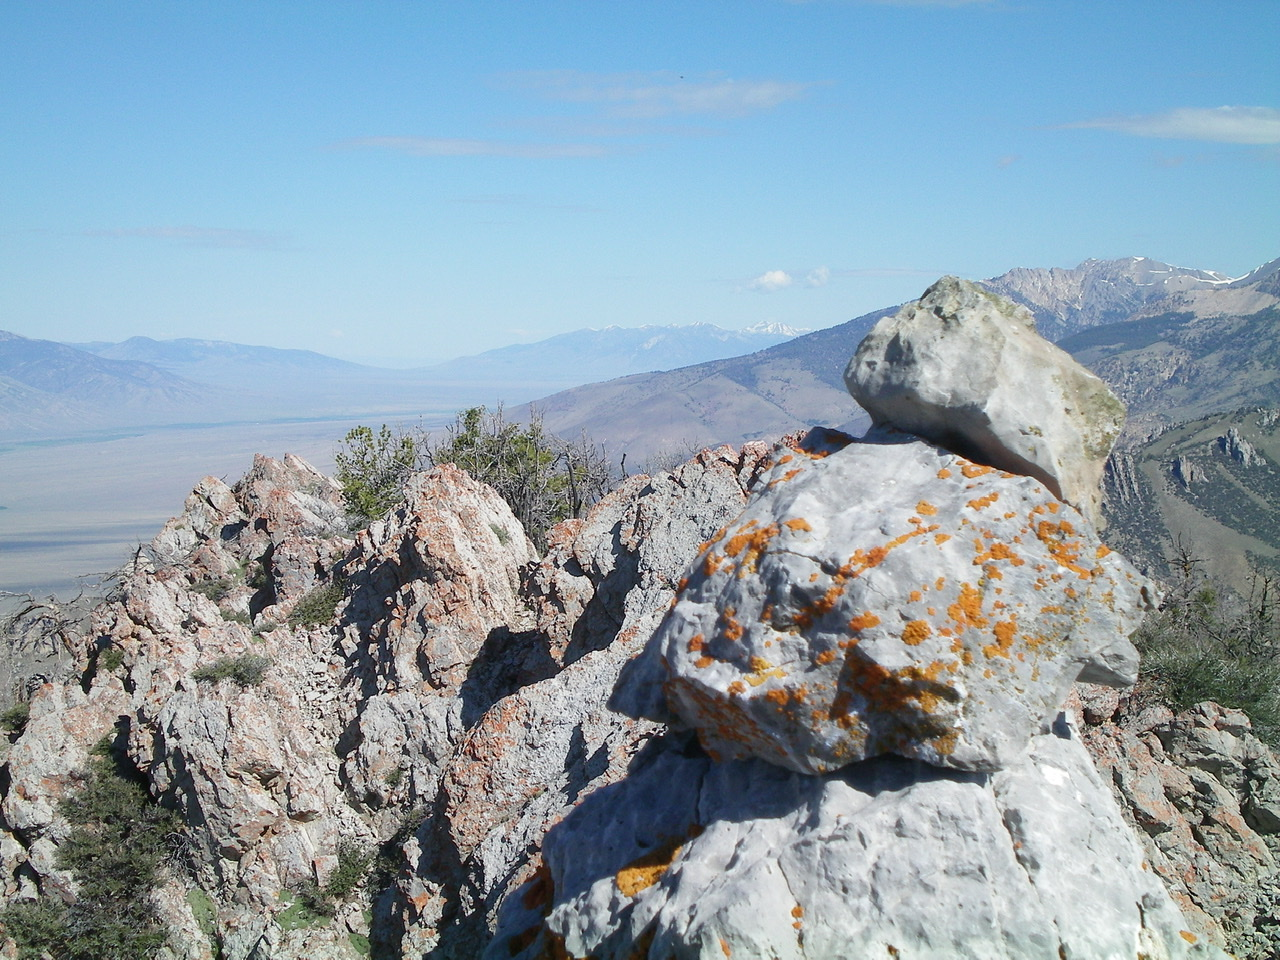 The 3-rock summit cairn atop the high point of Peak 9151, looking NW at the Class 3 towers/blocks on the summit ridge. Livingston Douglas Photo